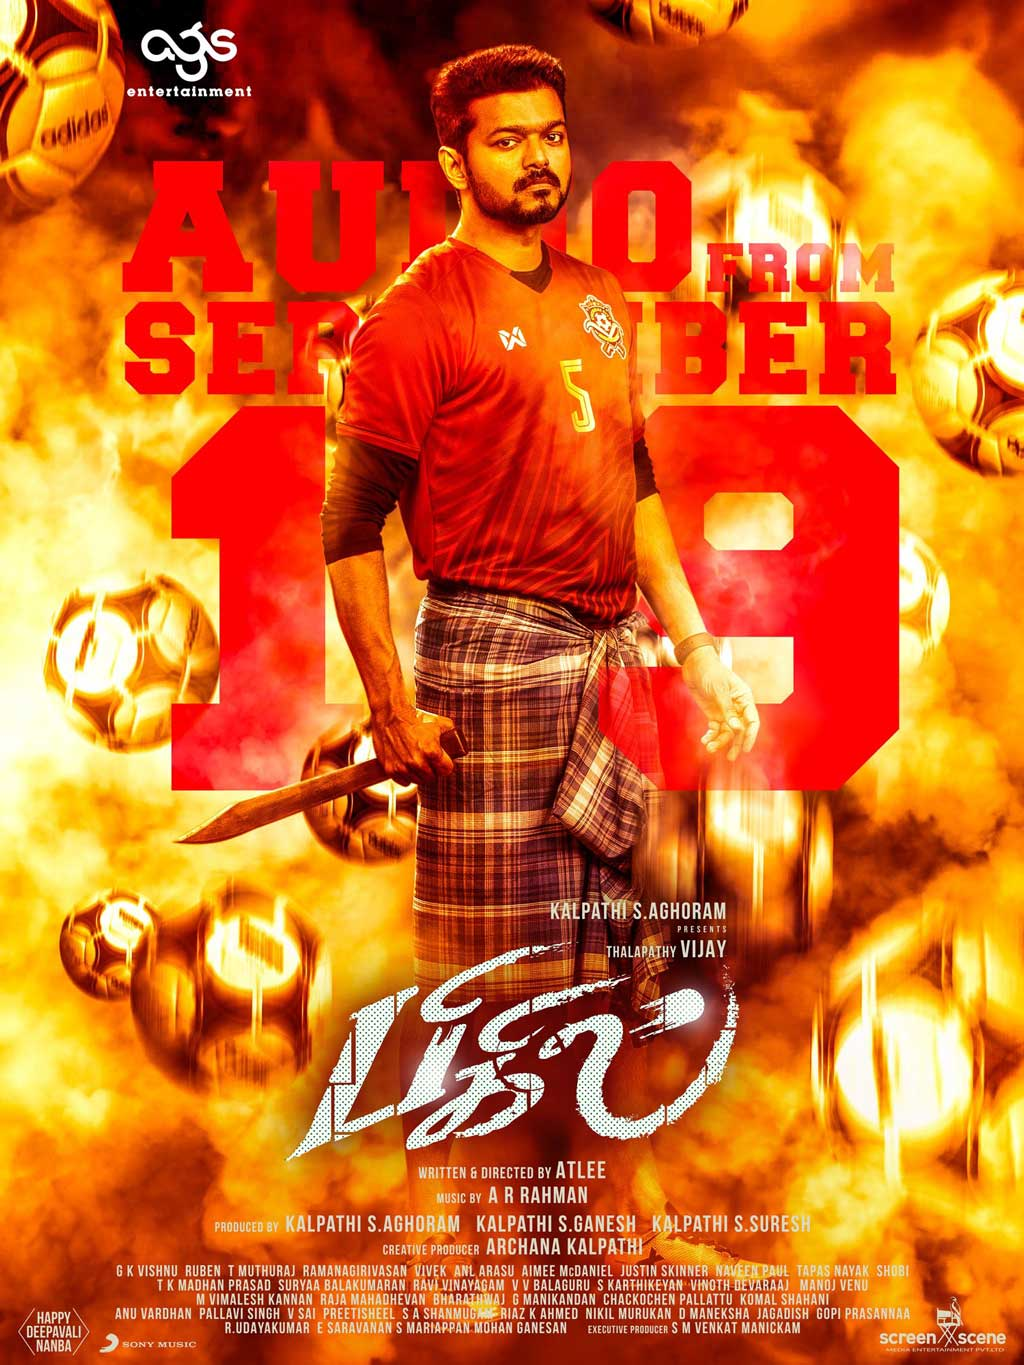 Bigil producer Archana Kalapathy says wait for Bigil release Date official announcement